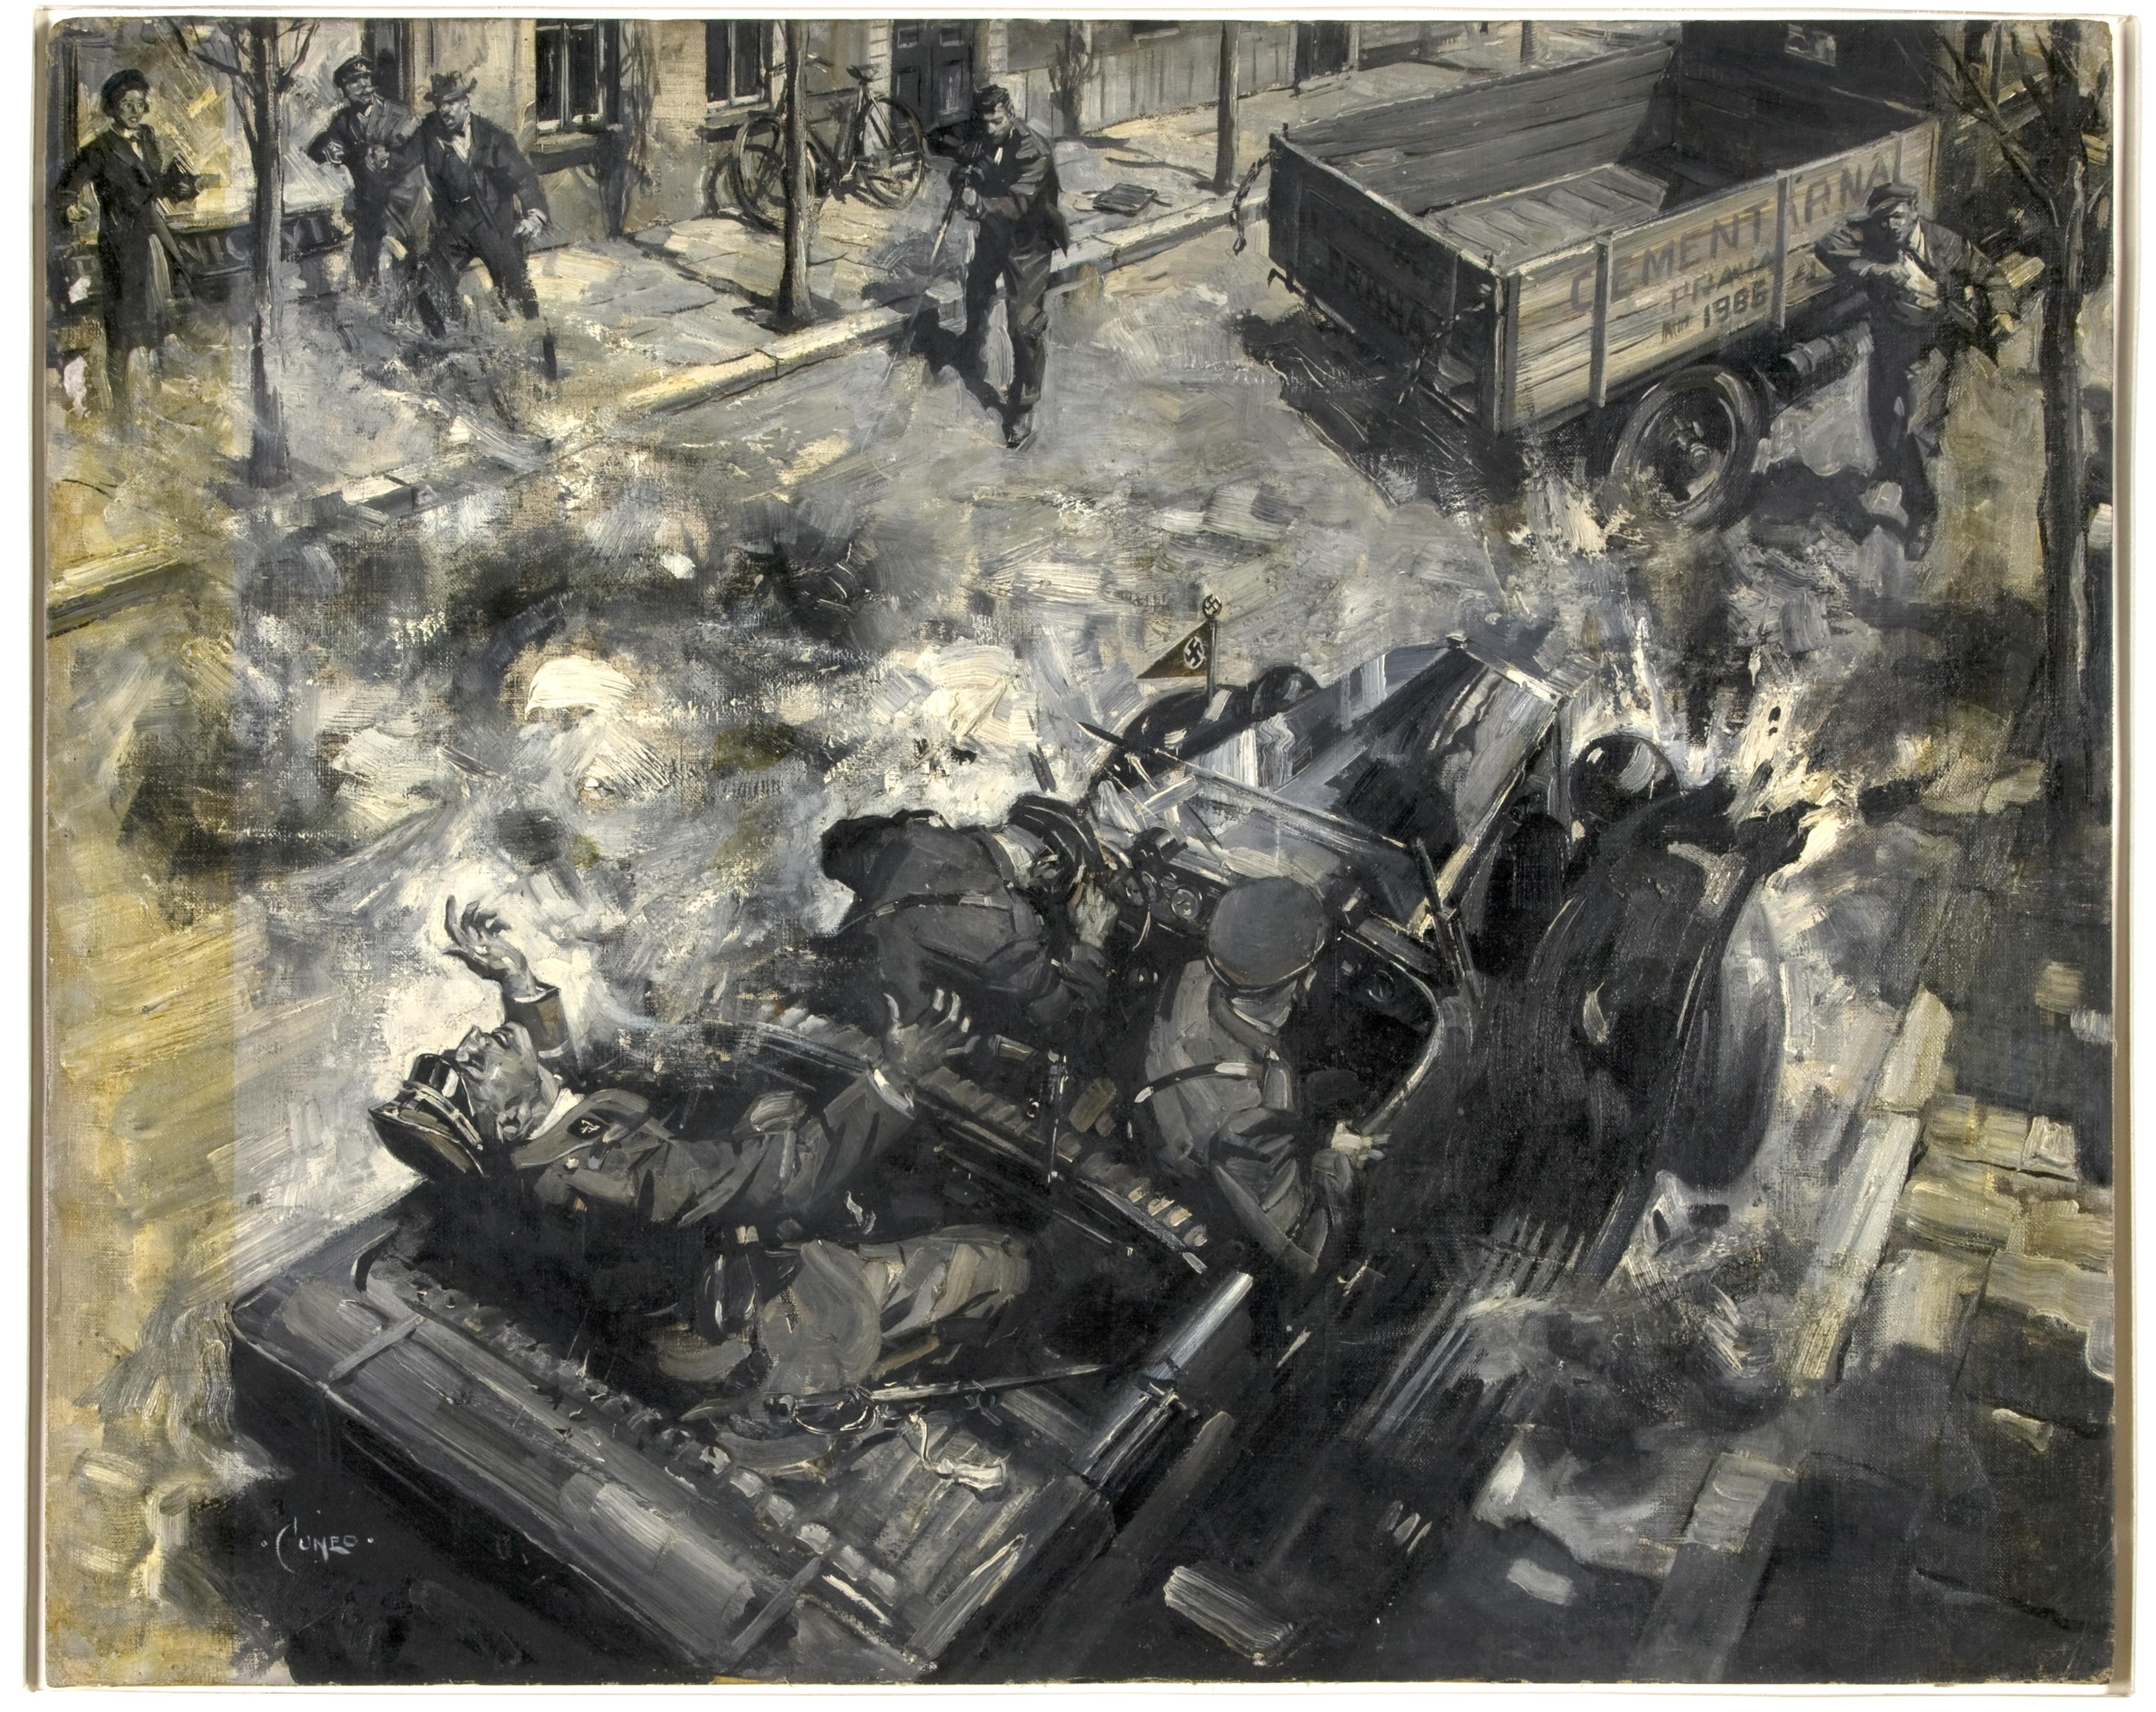 Portrait of the assassination of Heydrich